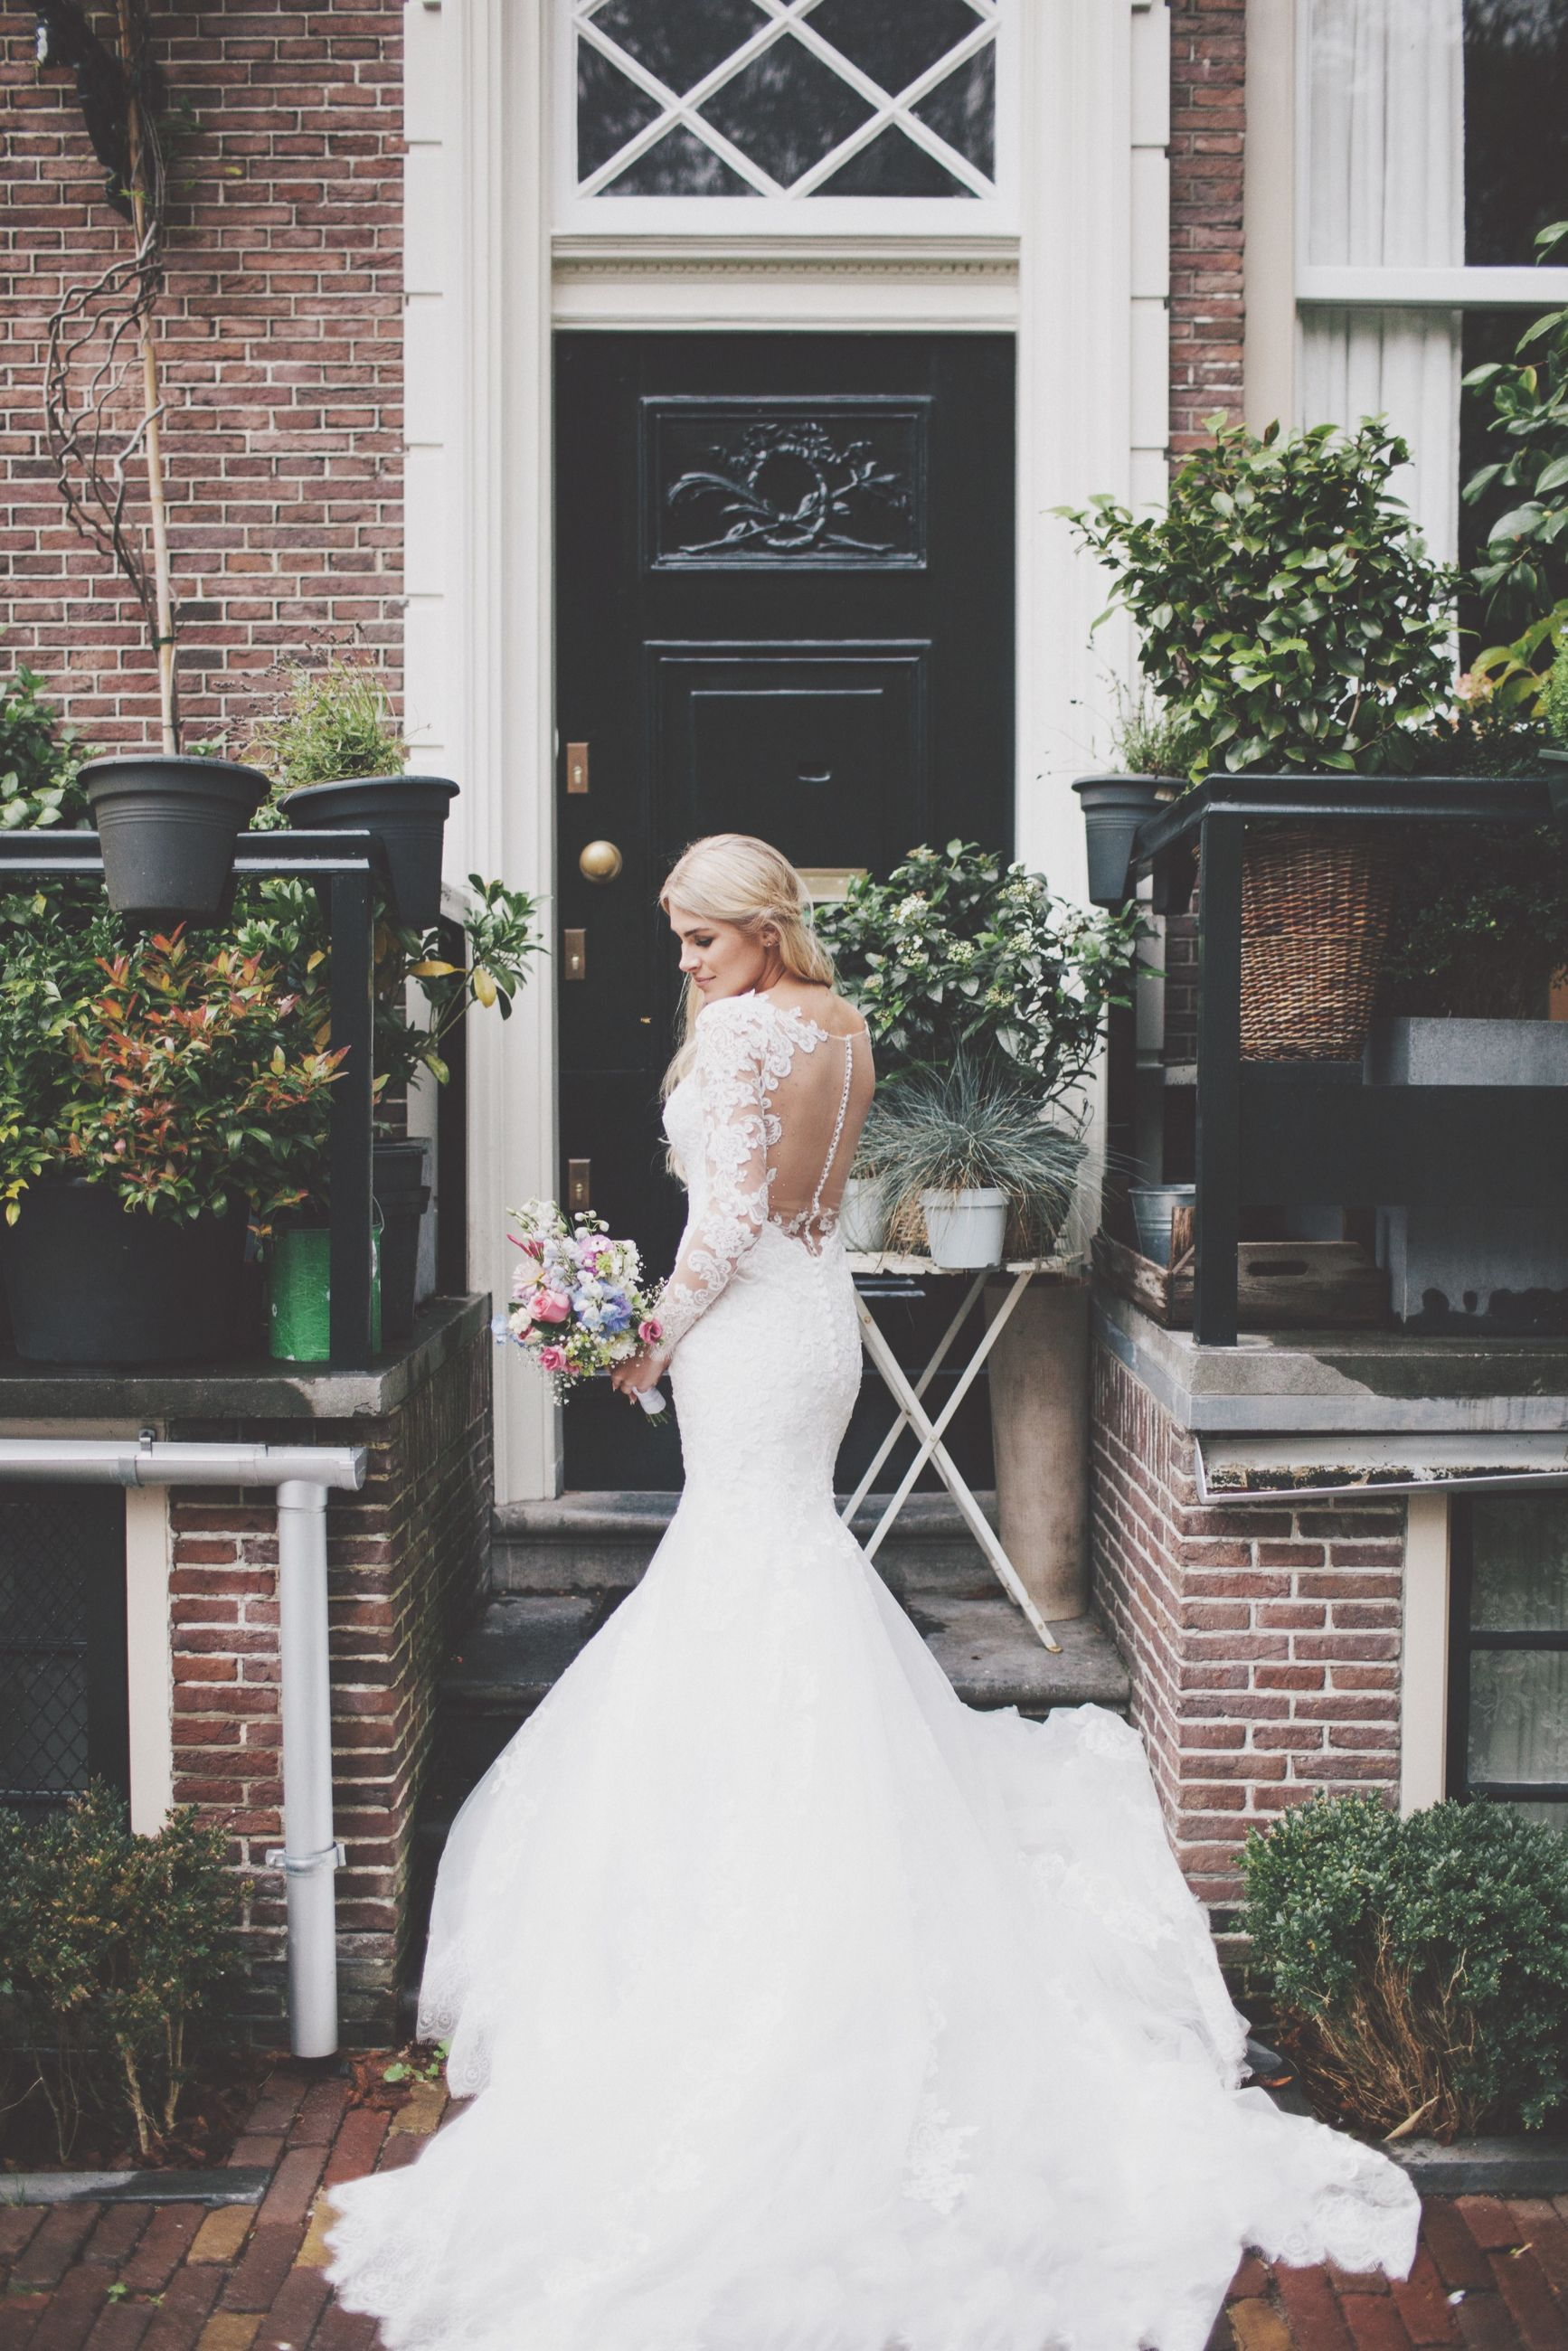 bride, wedding, wedding dress, architecture, real people, white color, built structure, beautiful woman, outdoors, building exterior, life events, celebration, young women, young adult, one person, full length, day, lifestyles, standing, women, groom, well-dressed, tiara